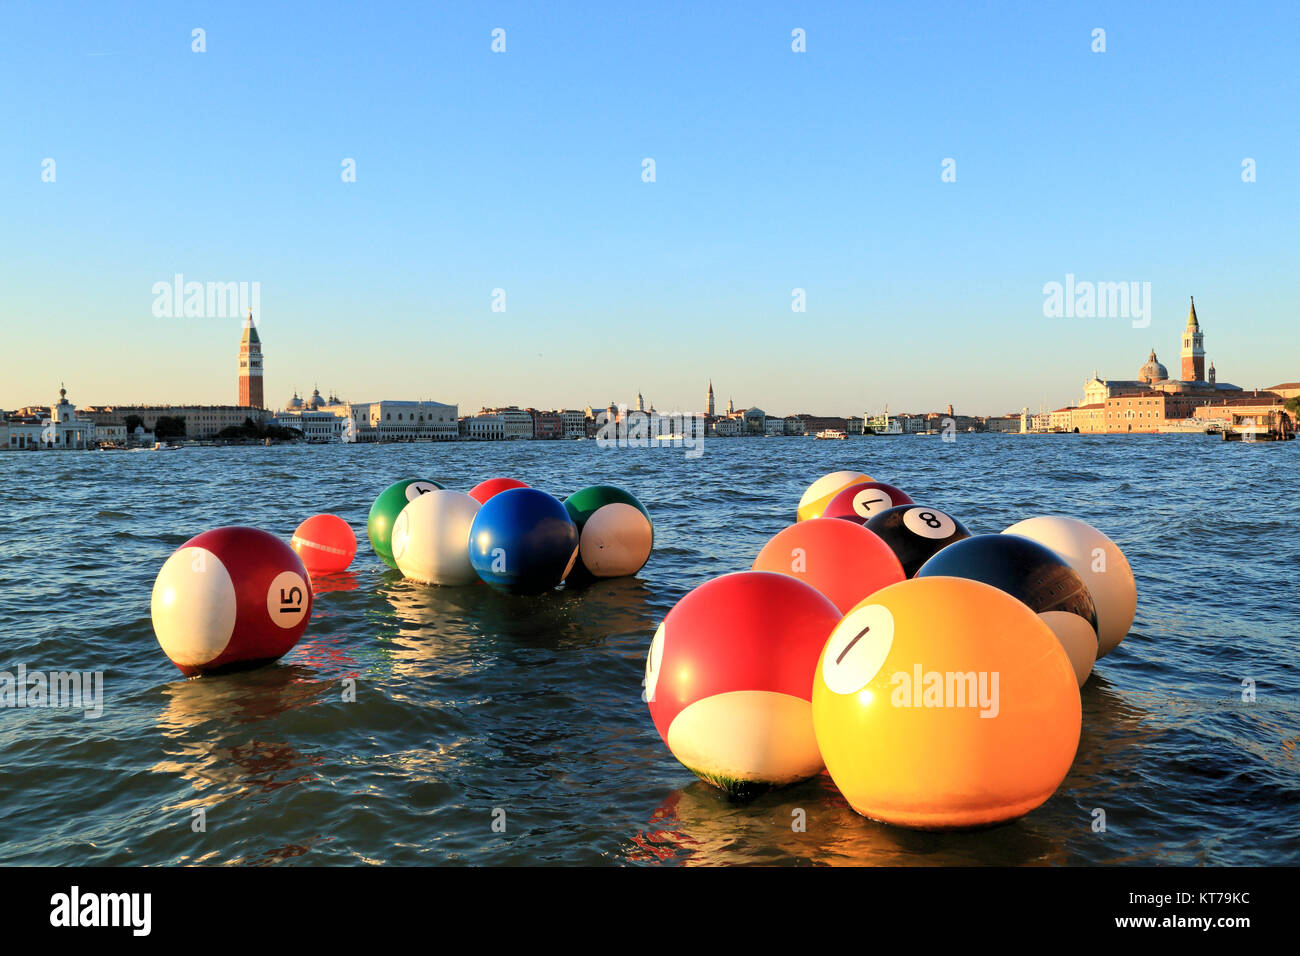 River Pool by Otto Vincze at Venice Biennale 2017 - Stock Image